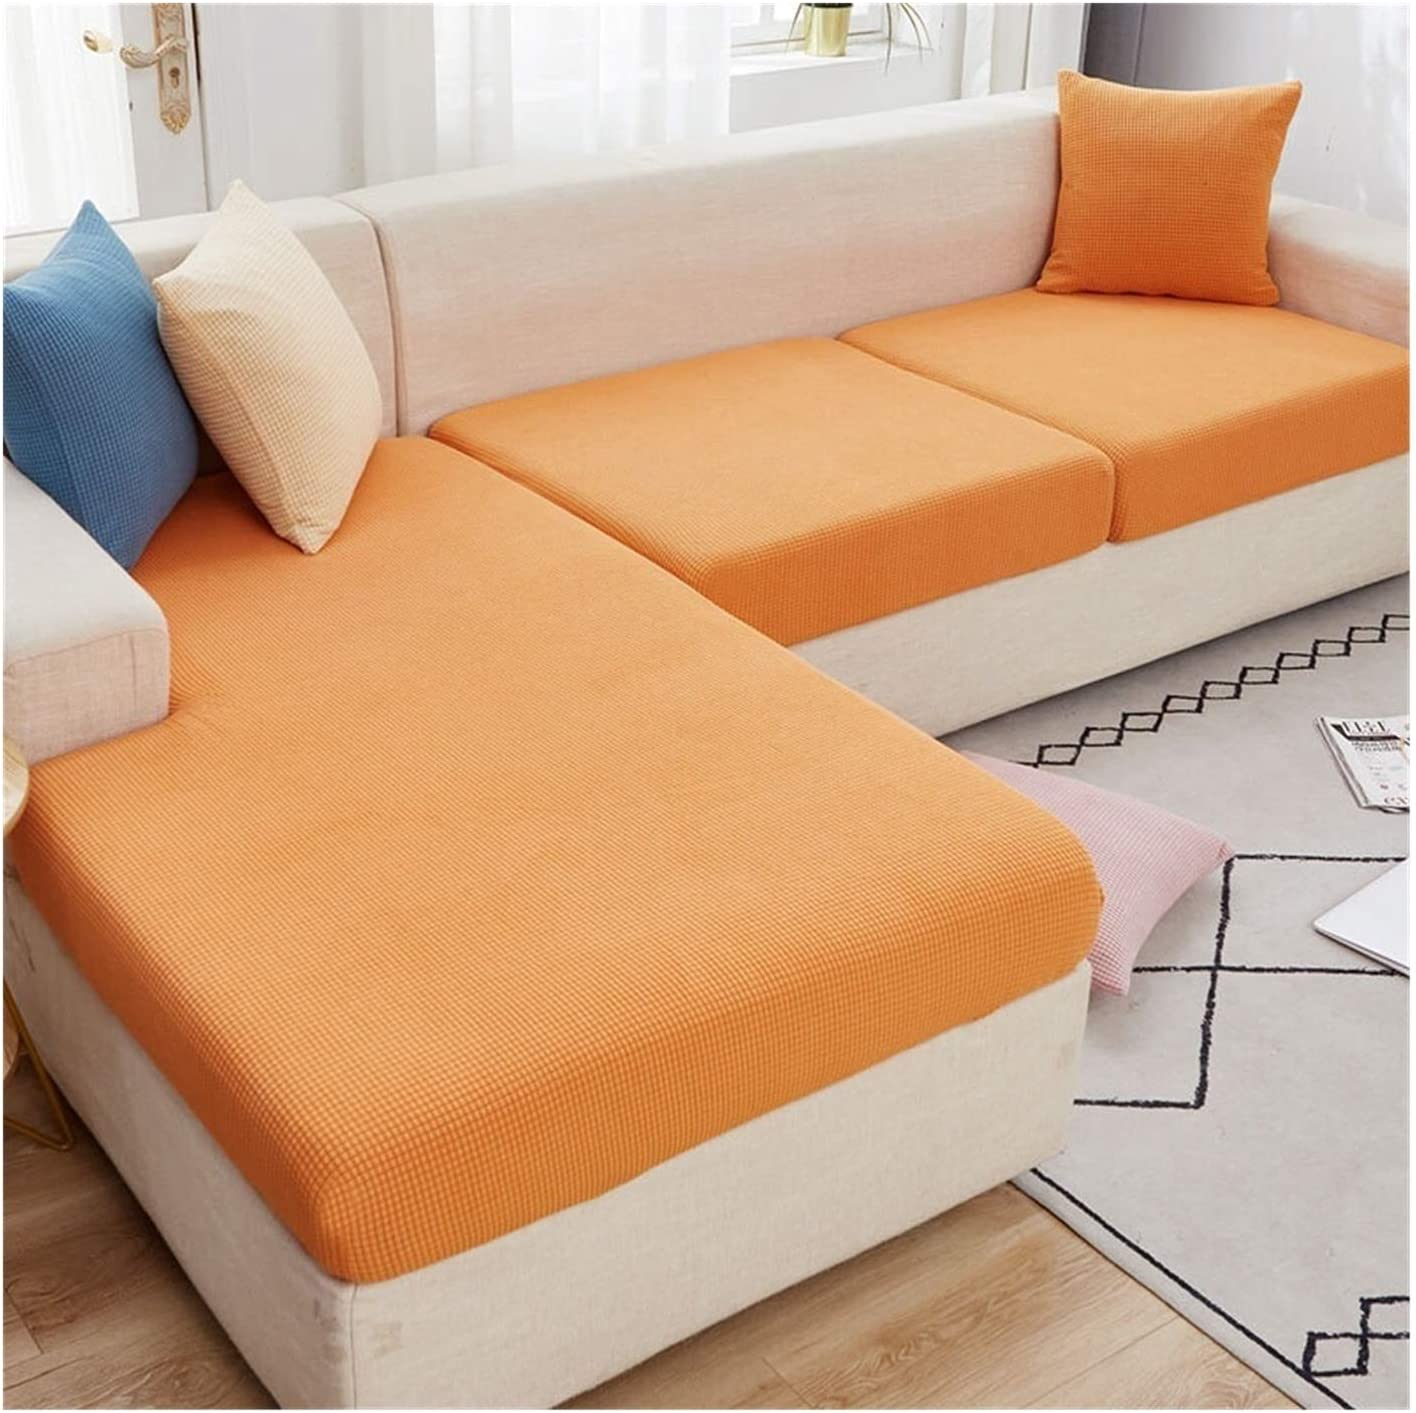 JPMSB Soft Plush Sectional Corner Cushion Sofa Seat Cover Price reduction Couch Houston Mall